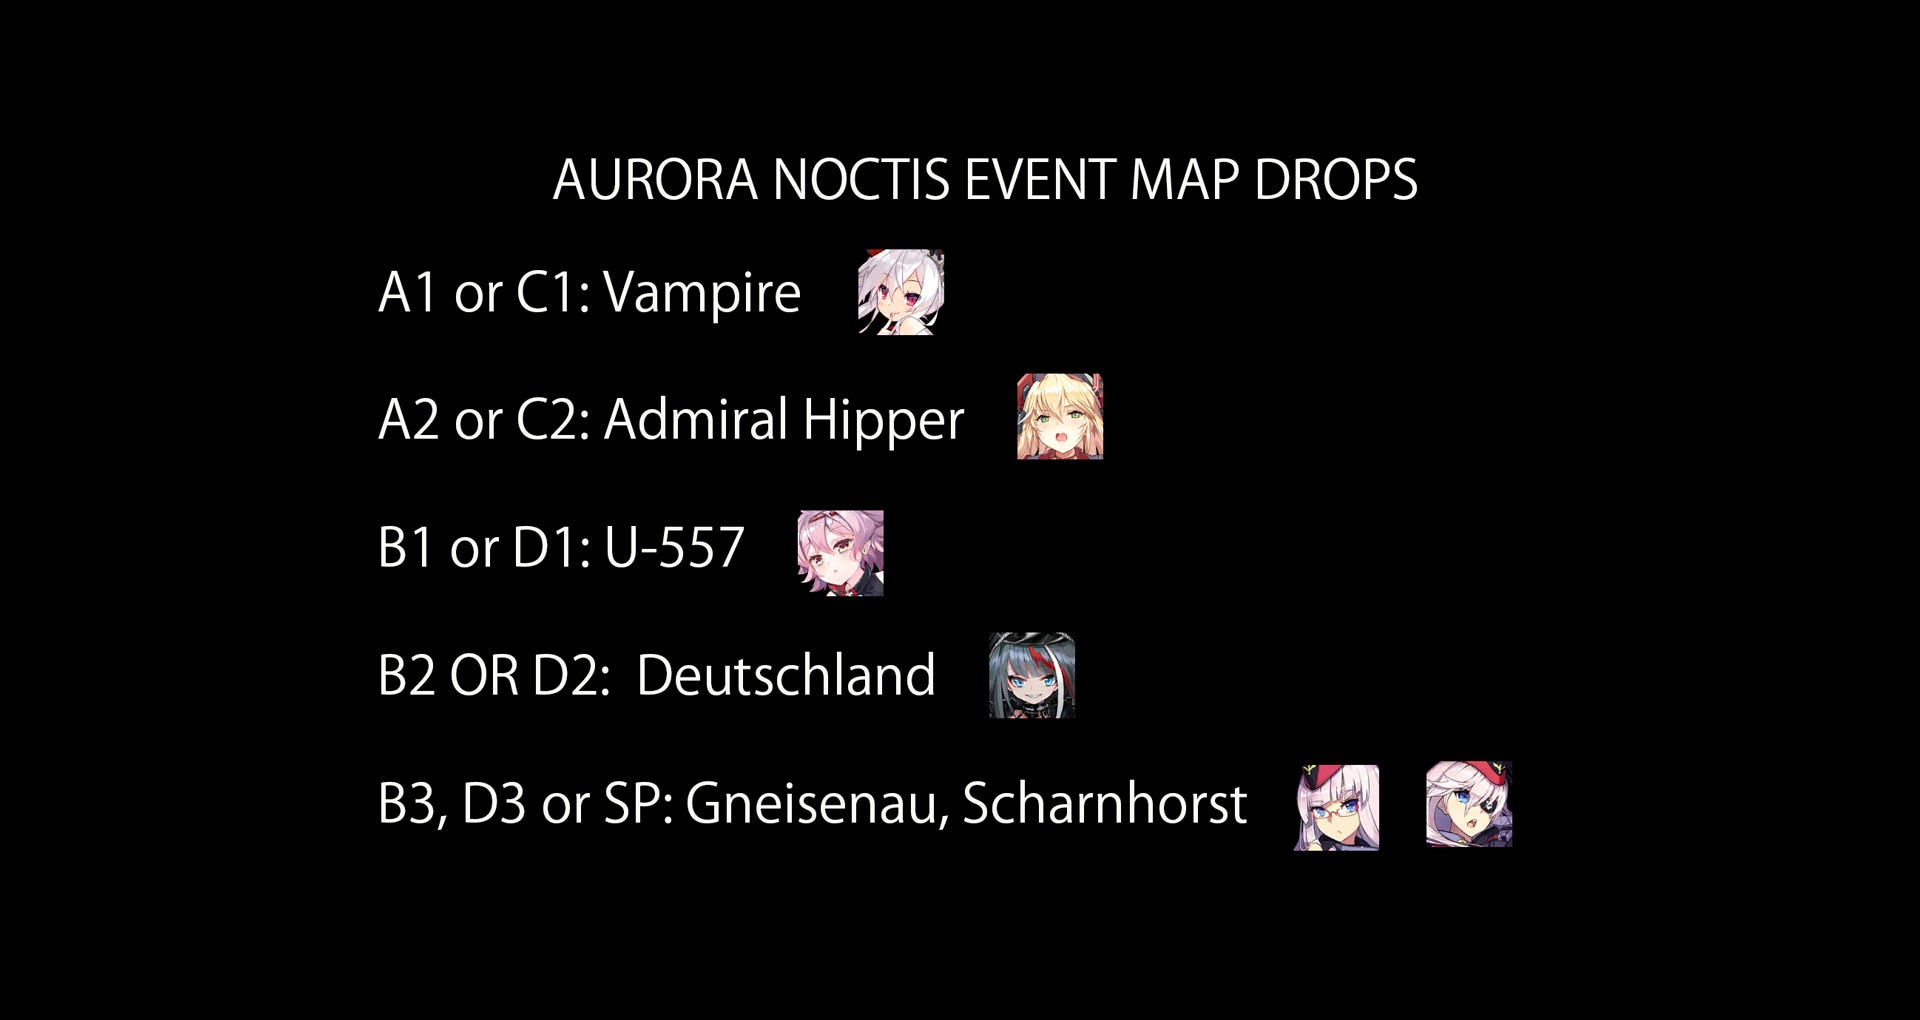 Azur Lane Aurora Noctis Event Tips All You Need To Know Technobubble